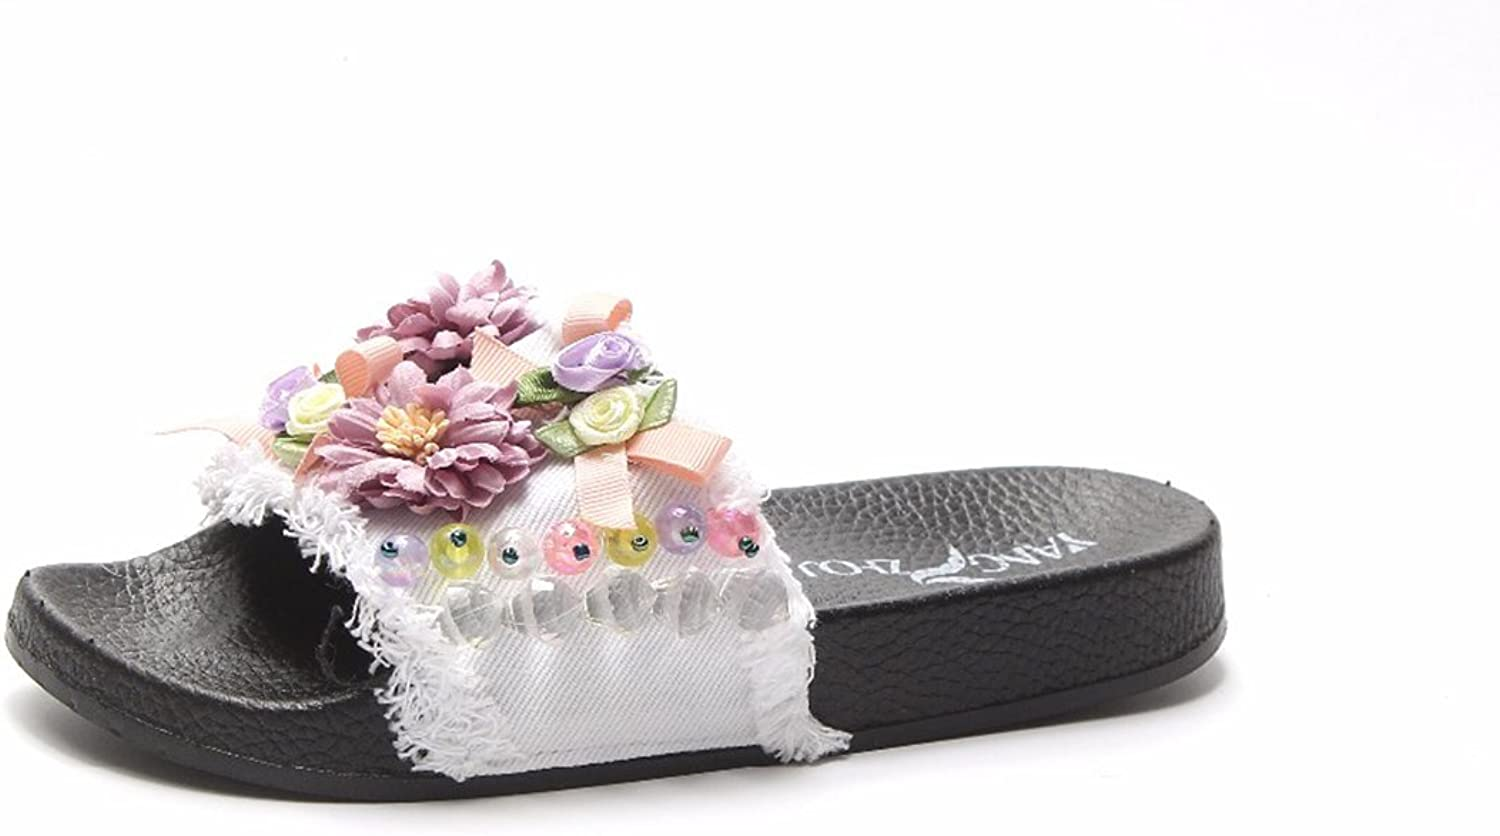 New Summer Fashion Sweet Flower String Bead Beach Slippers Summer Slides Flat shoes for Ladies